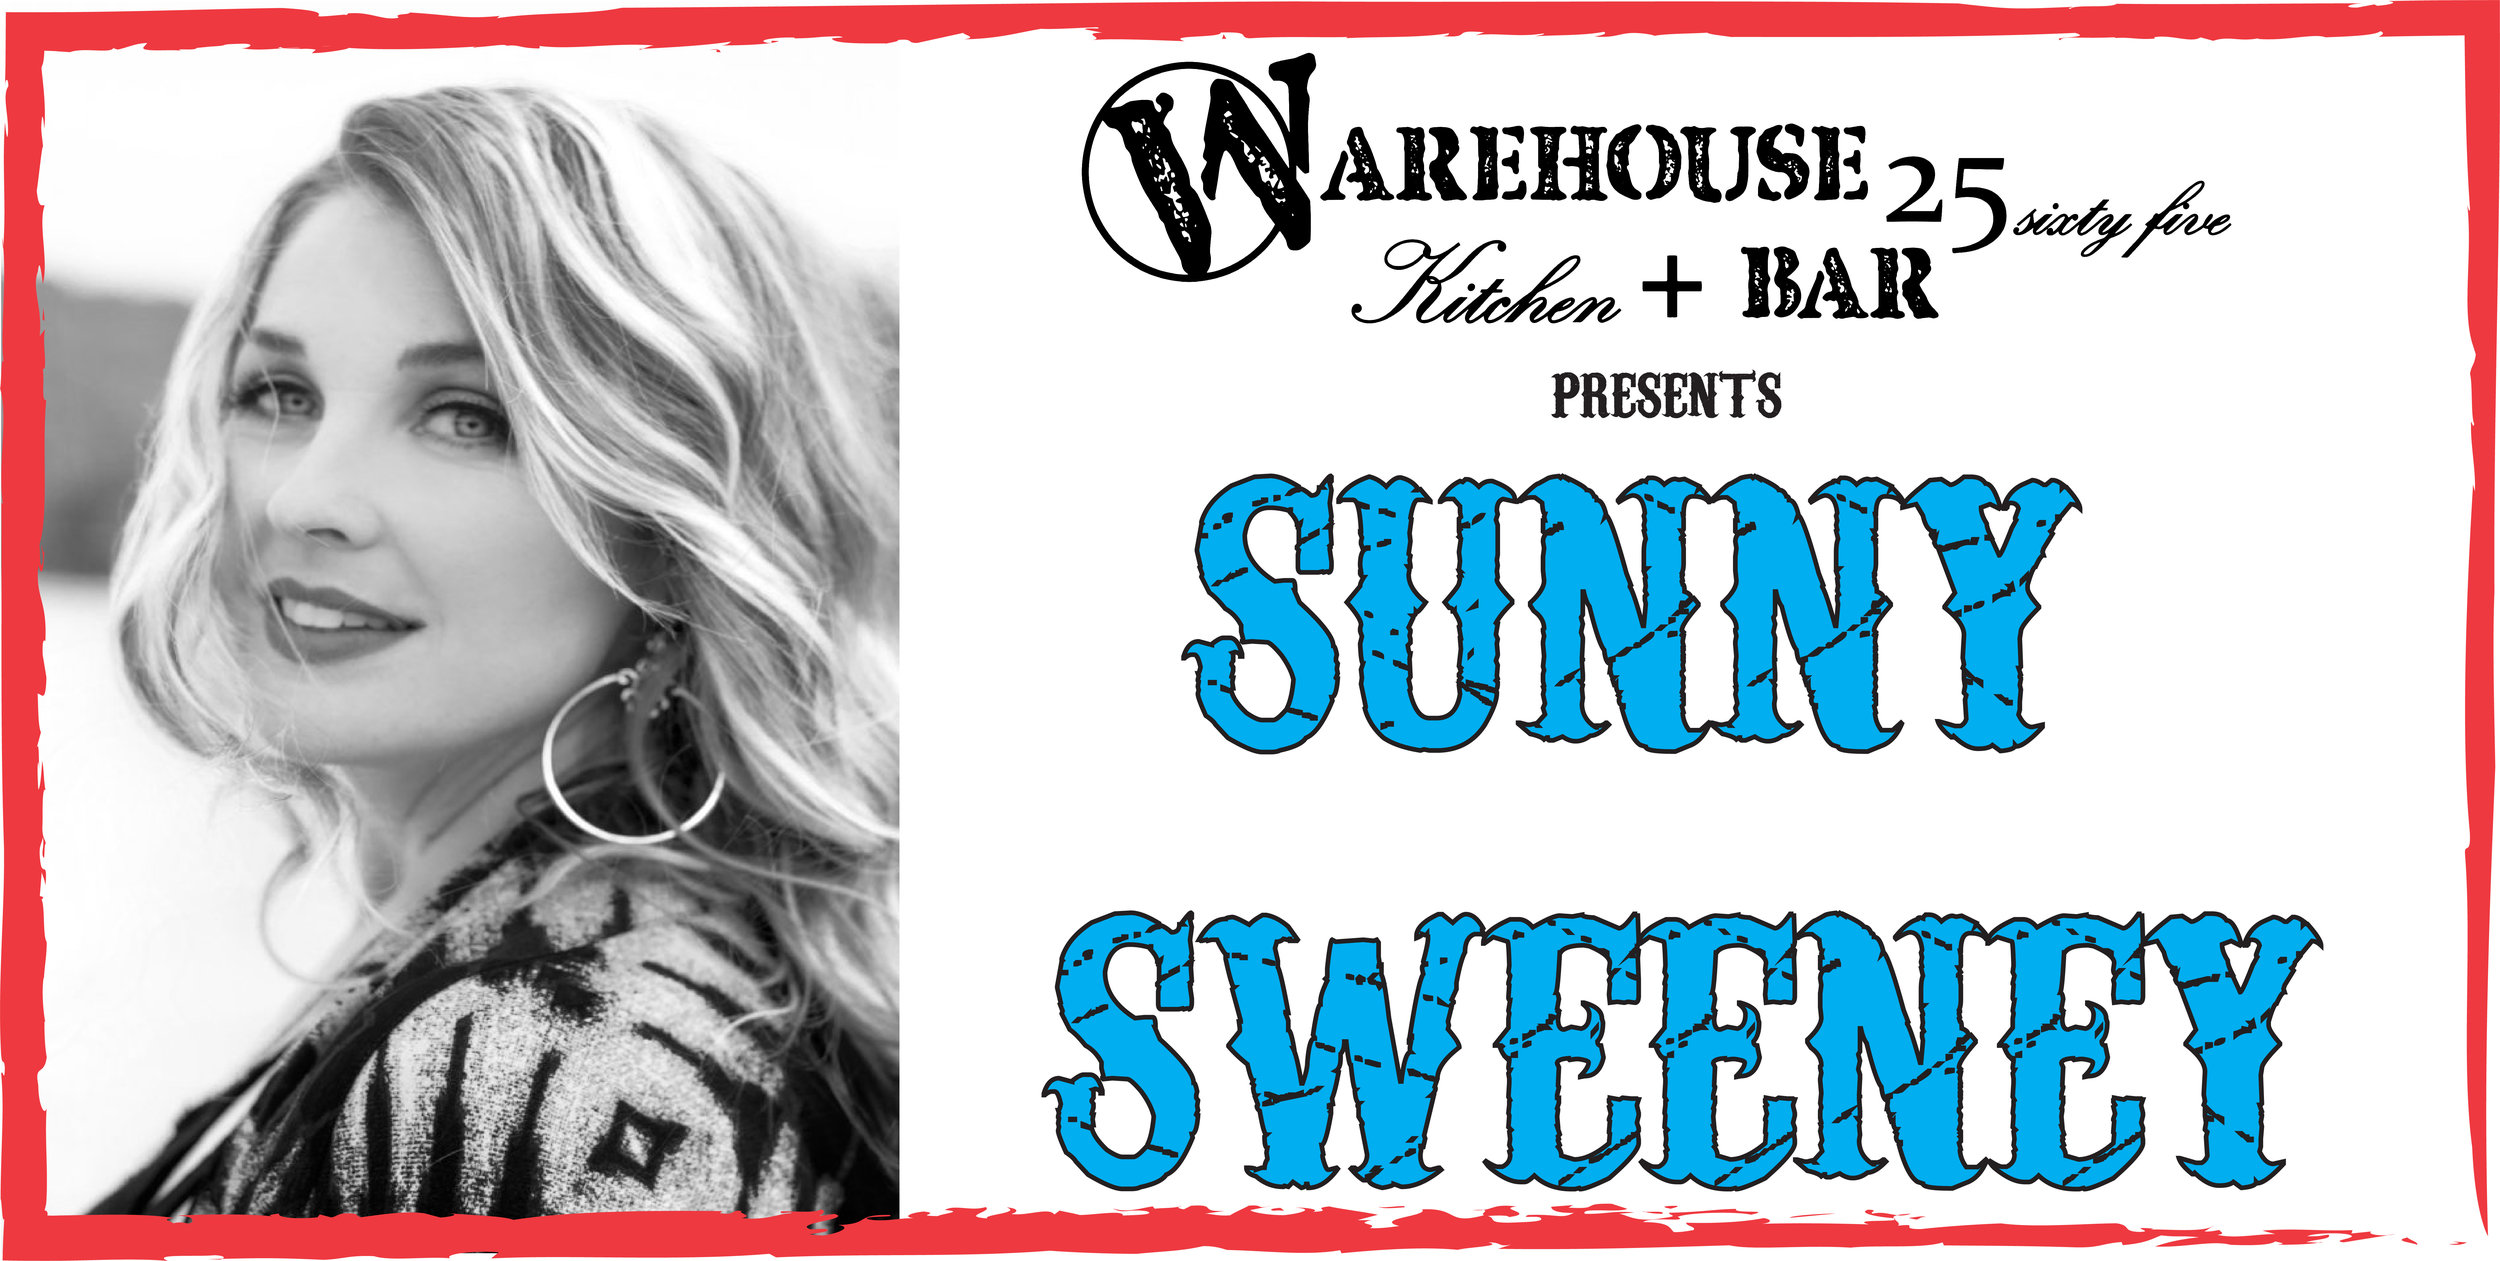 Sunny Sweeney set to light up the RMEF Big Stage at the Warehouse Friday August 2nd! Tickets only $20 seating is first come first serve ALL AGES SHOW so come early and stay late for this Star on the Rise!